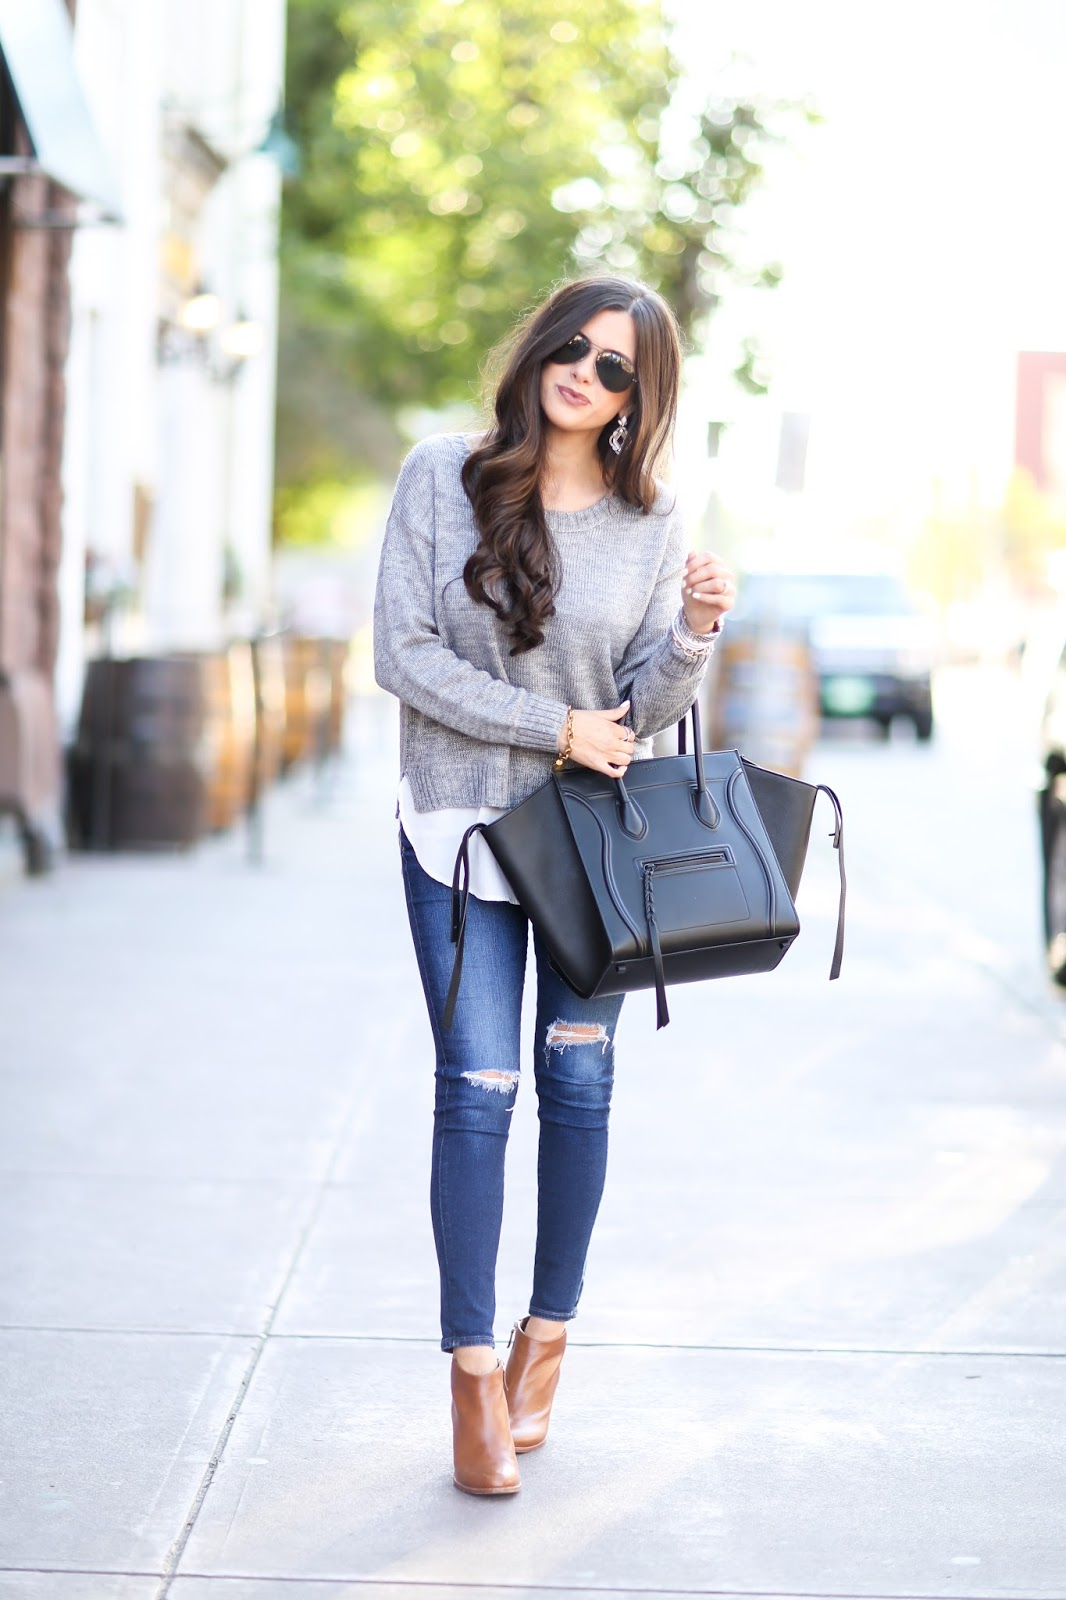 ag jeans with rips, tan booties fall 2015, nordstrom tan booties, black celine phantom, black rayban aviators womens, emily gemma, fall ootd pinterest-9.jpg